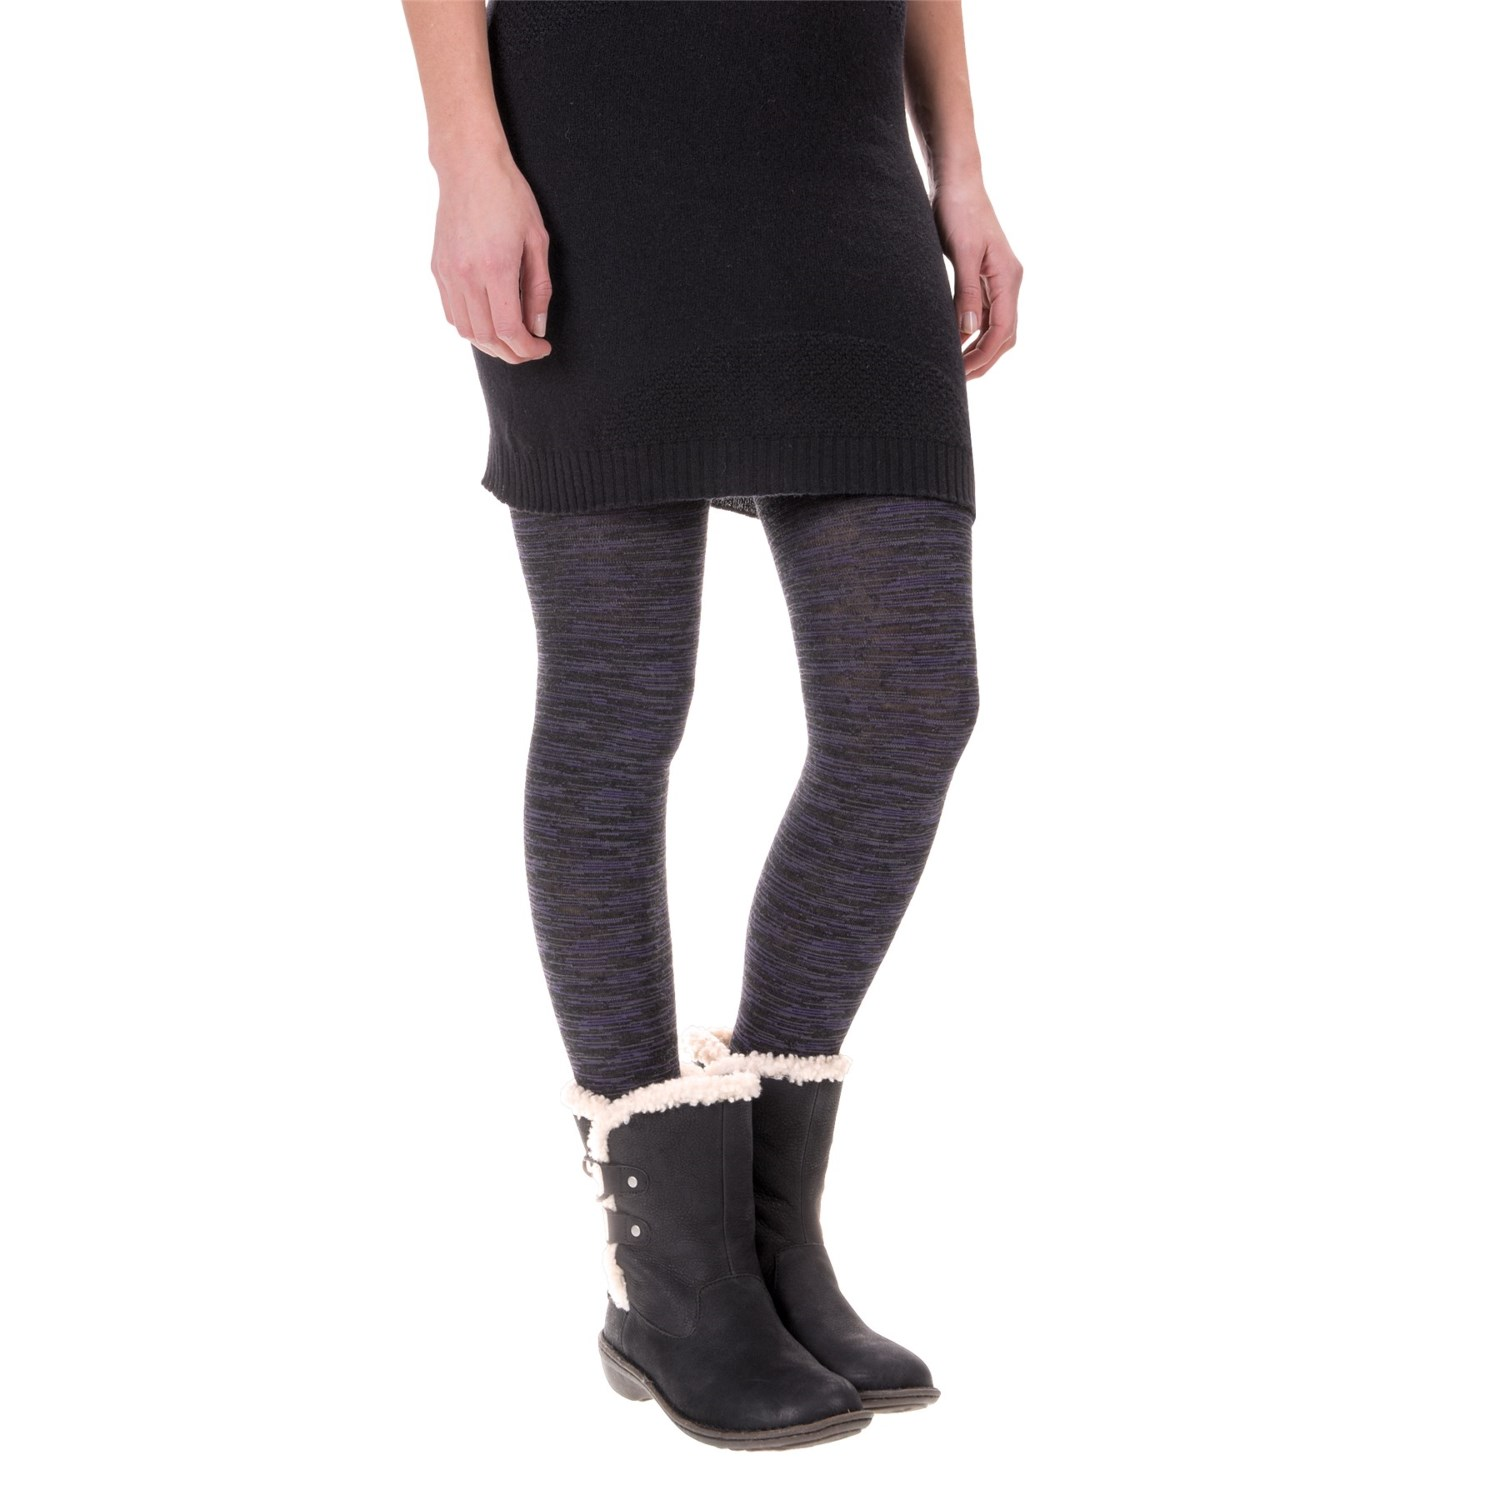 Free Shipping with $50 purchase. Explore details, ratings and reviews for our women's socks at hereffil53.cf Our high quality women's accessories are expertly designed to last.